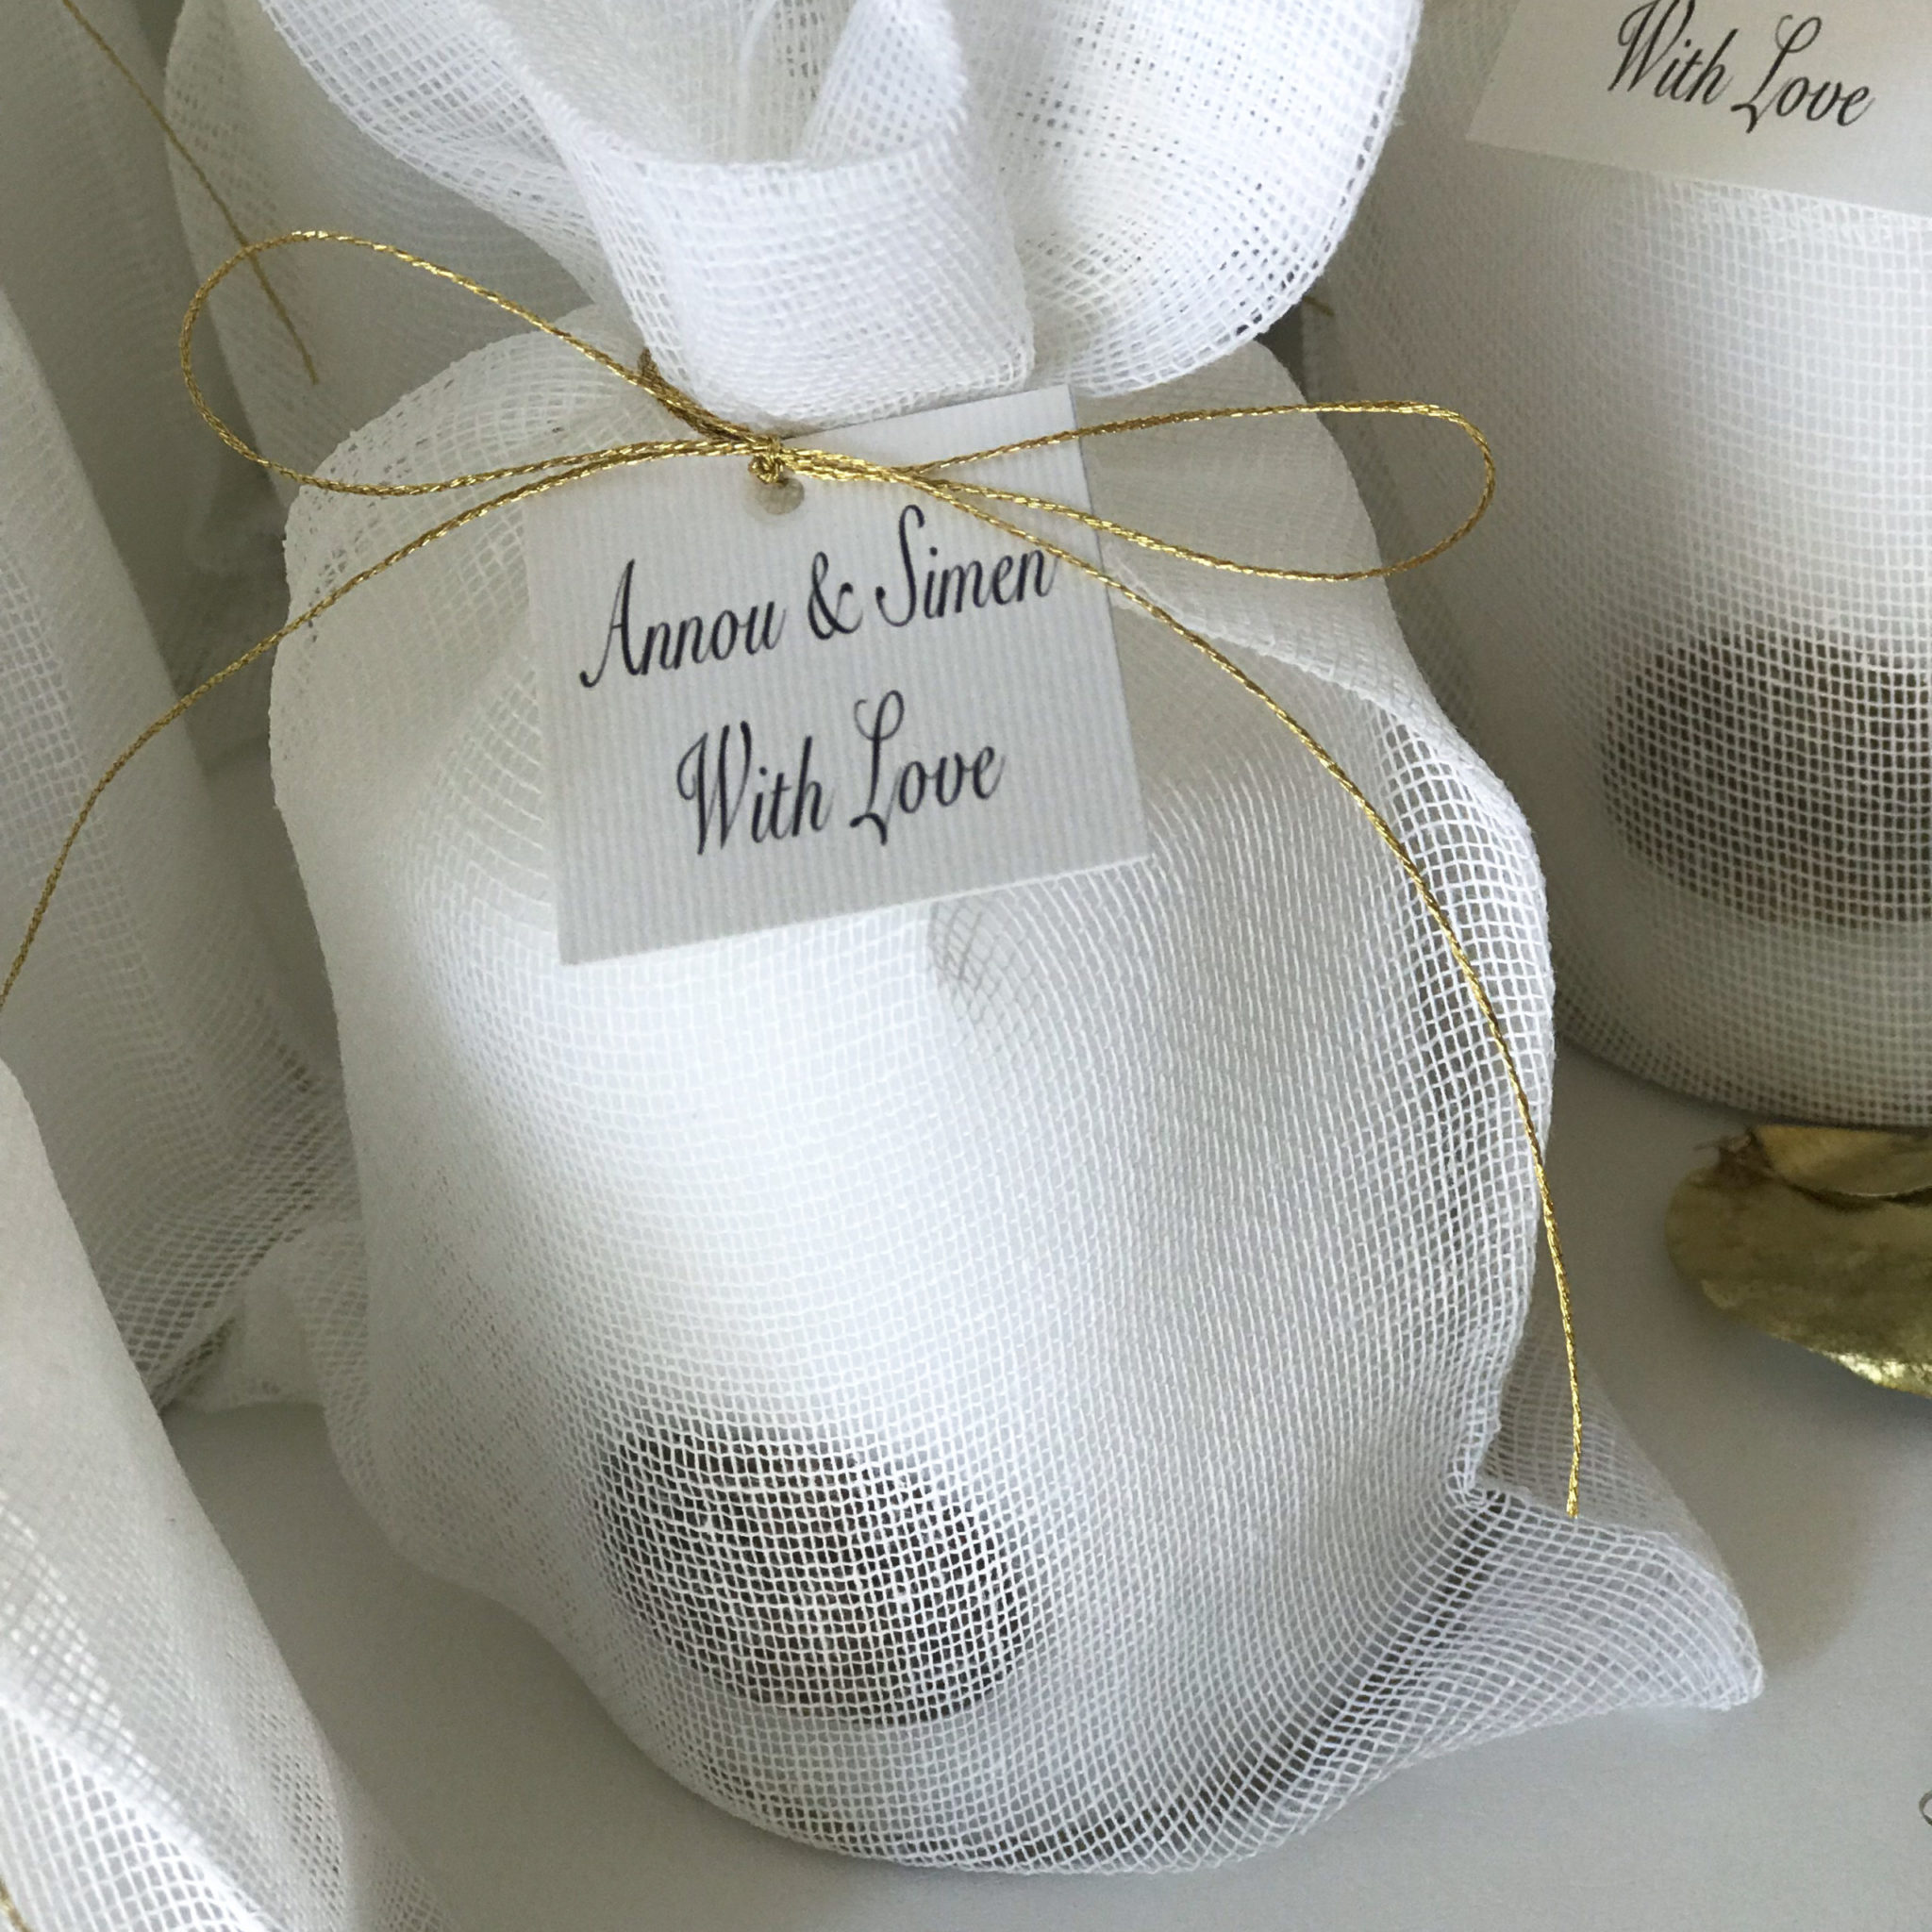 Sealed With Love-wedding-welcome gift-close up